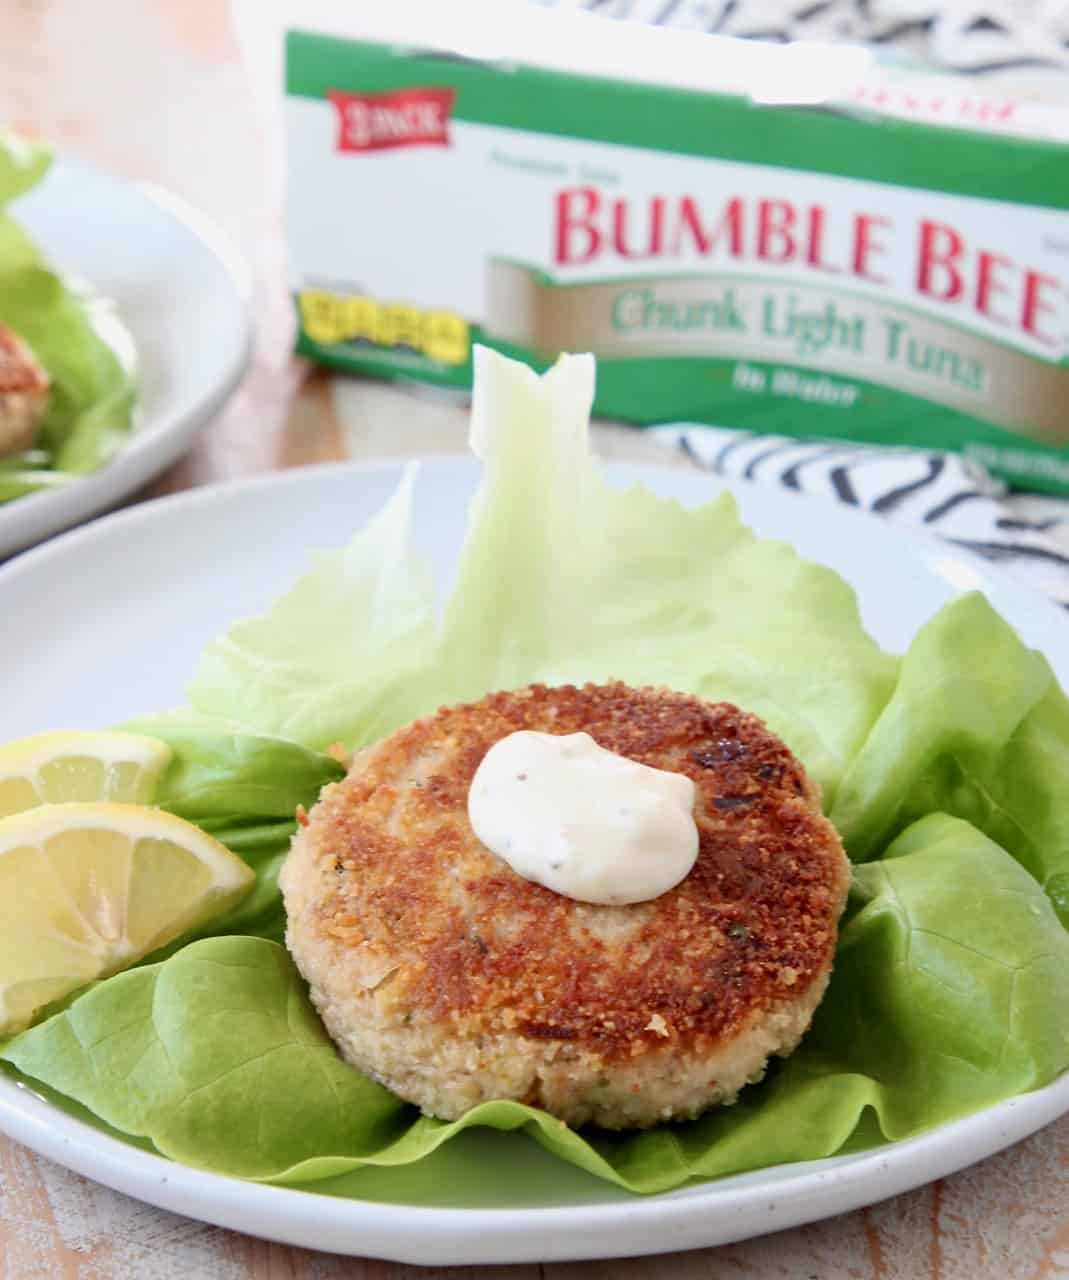 Tuna patty on leaf of lettuce with lemon wedges on plate